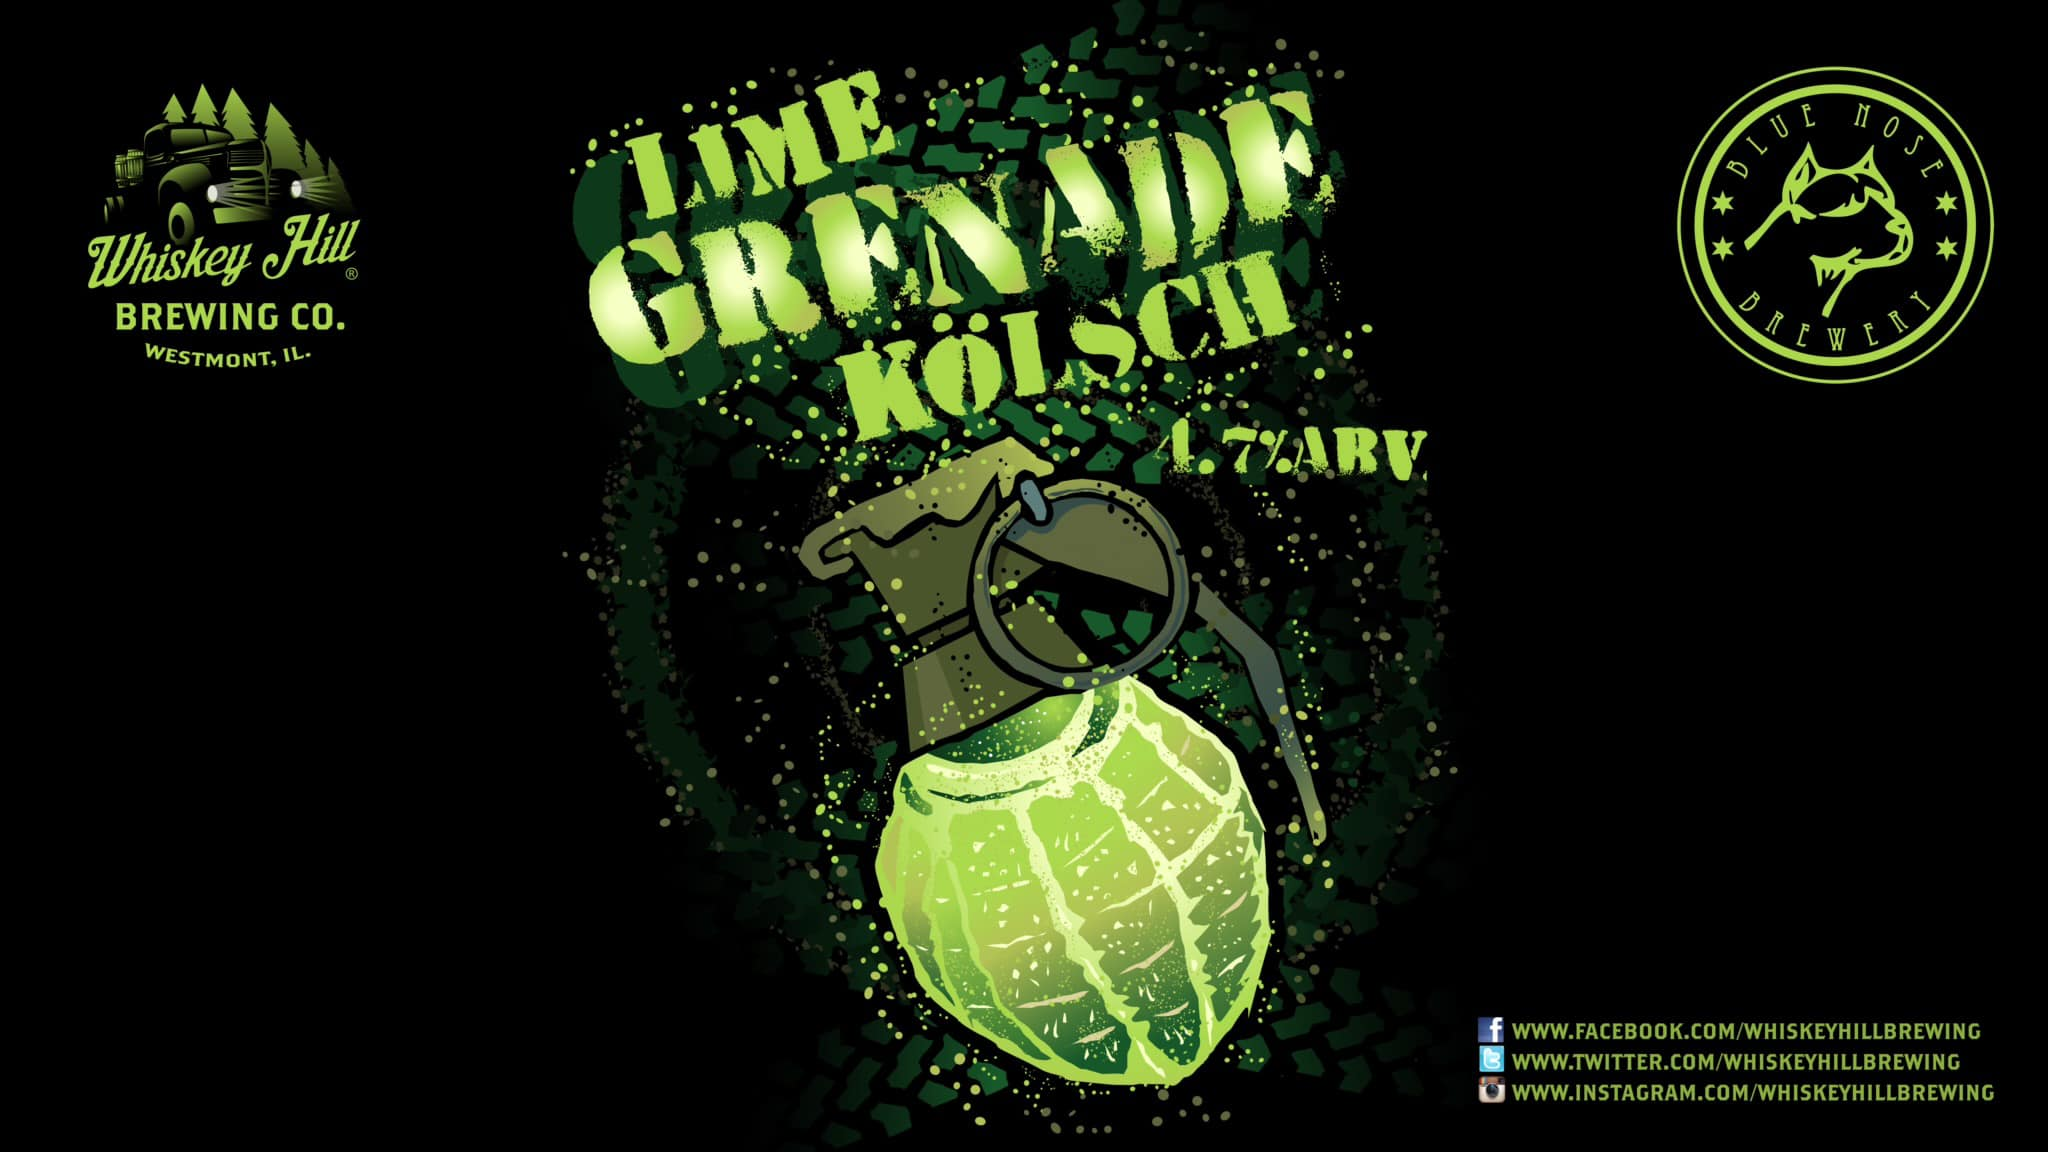 Label for Lime Grenade Kolsh from Whiskey Hill and Blue Nose